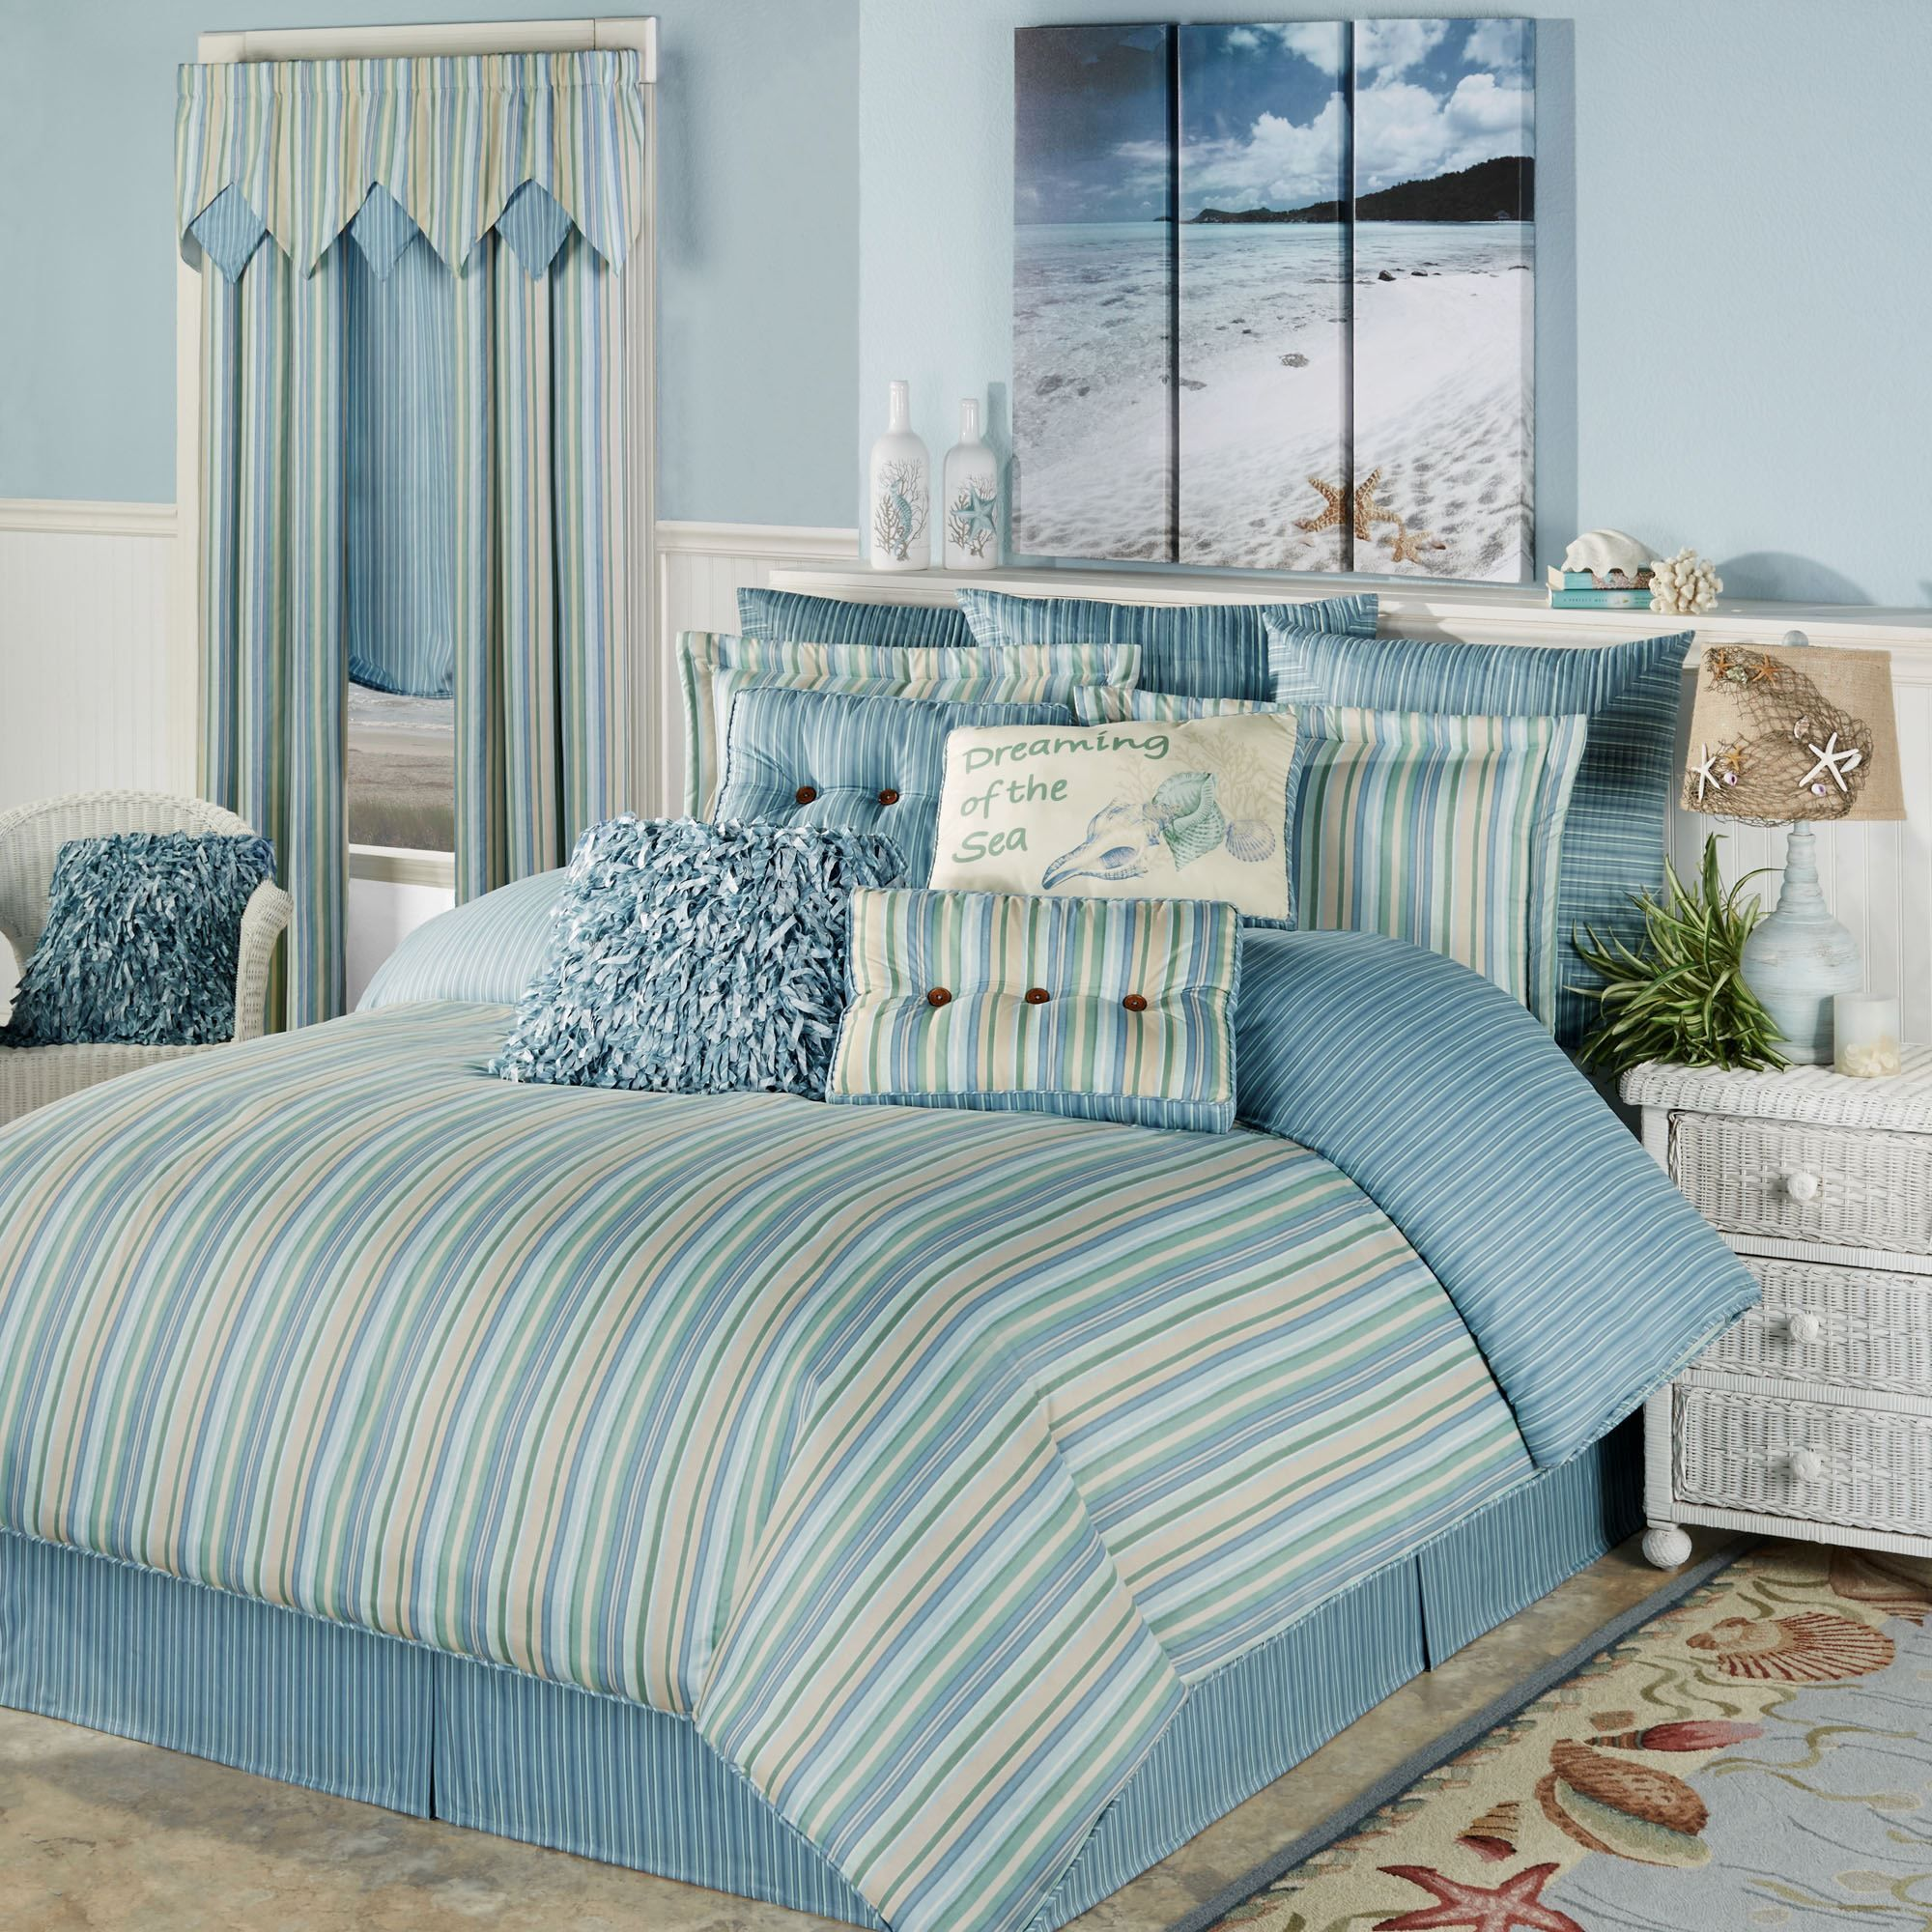 town paris nz cape bedding overstock coastal outstanding softball walmart captivating south cheap touch horse bedspreads hotel of with africa dw class australia queen along mens remarkable sets comforter quilts com girls plus smart nba sale luxury comforters